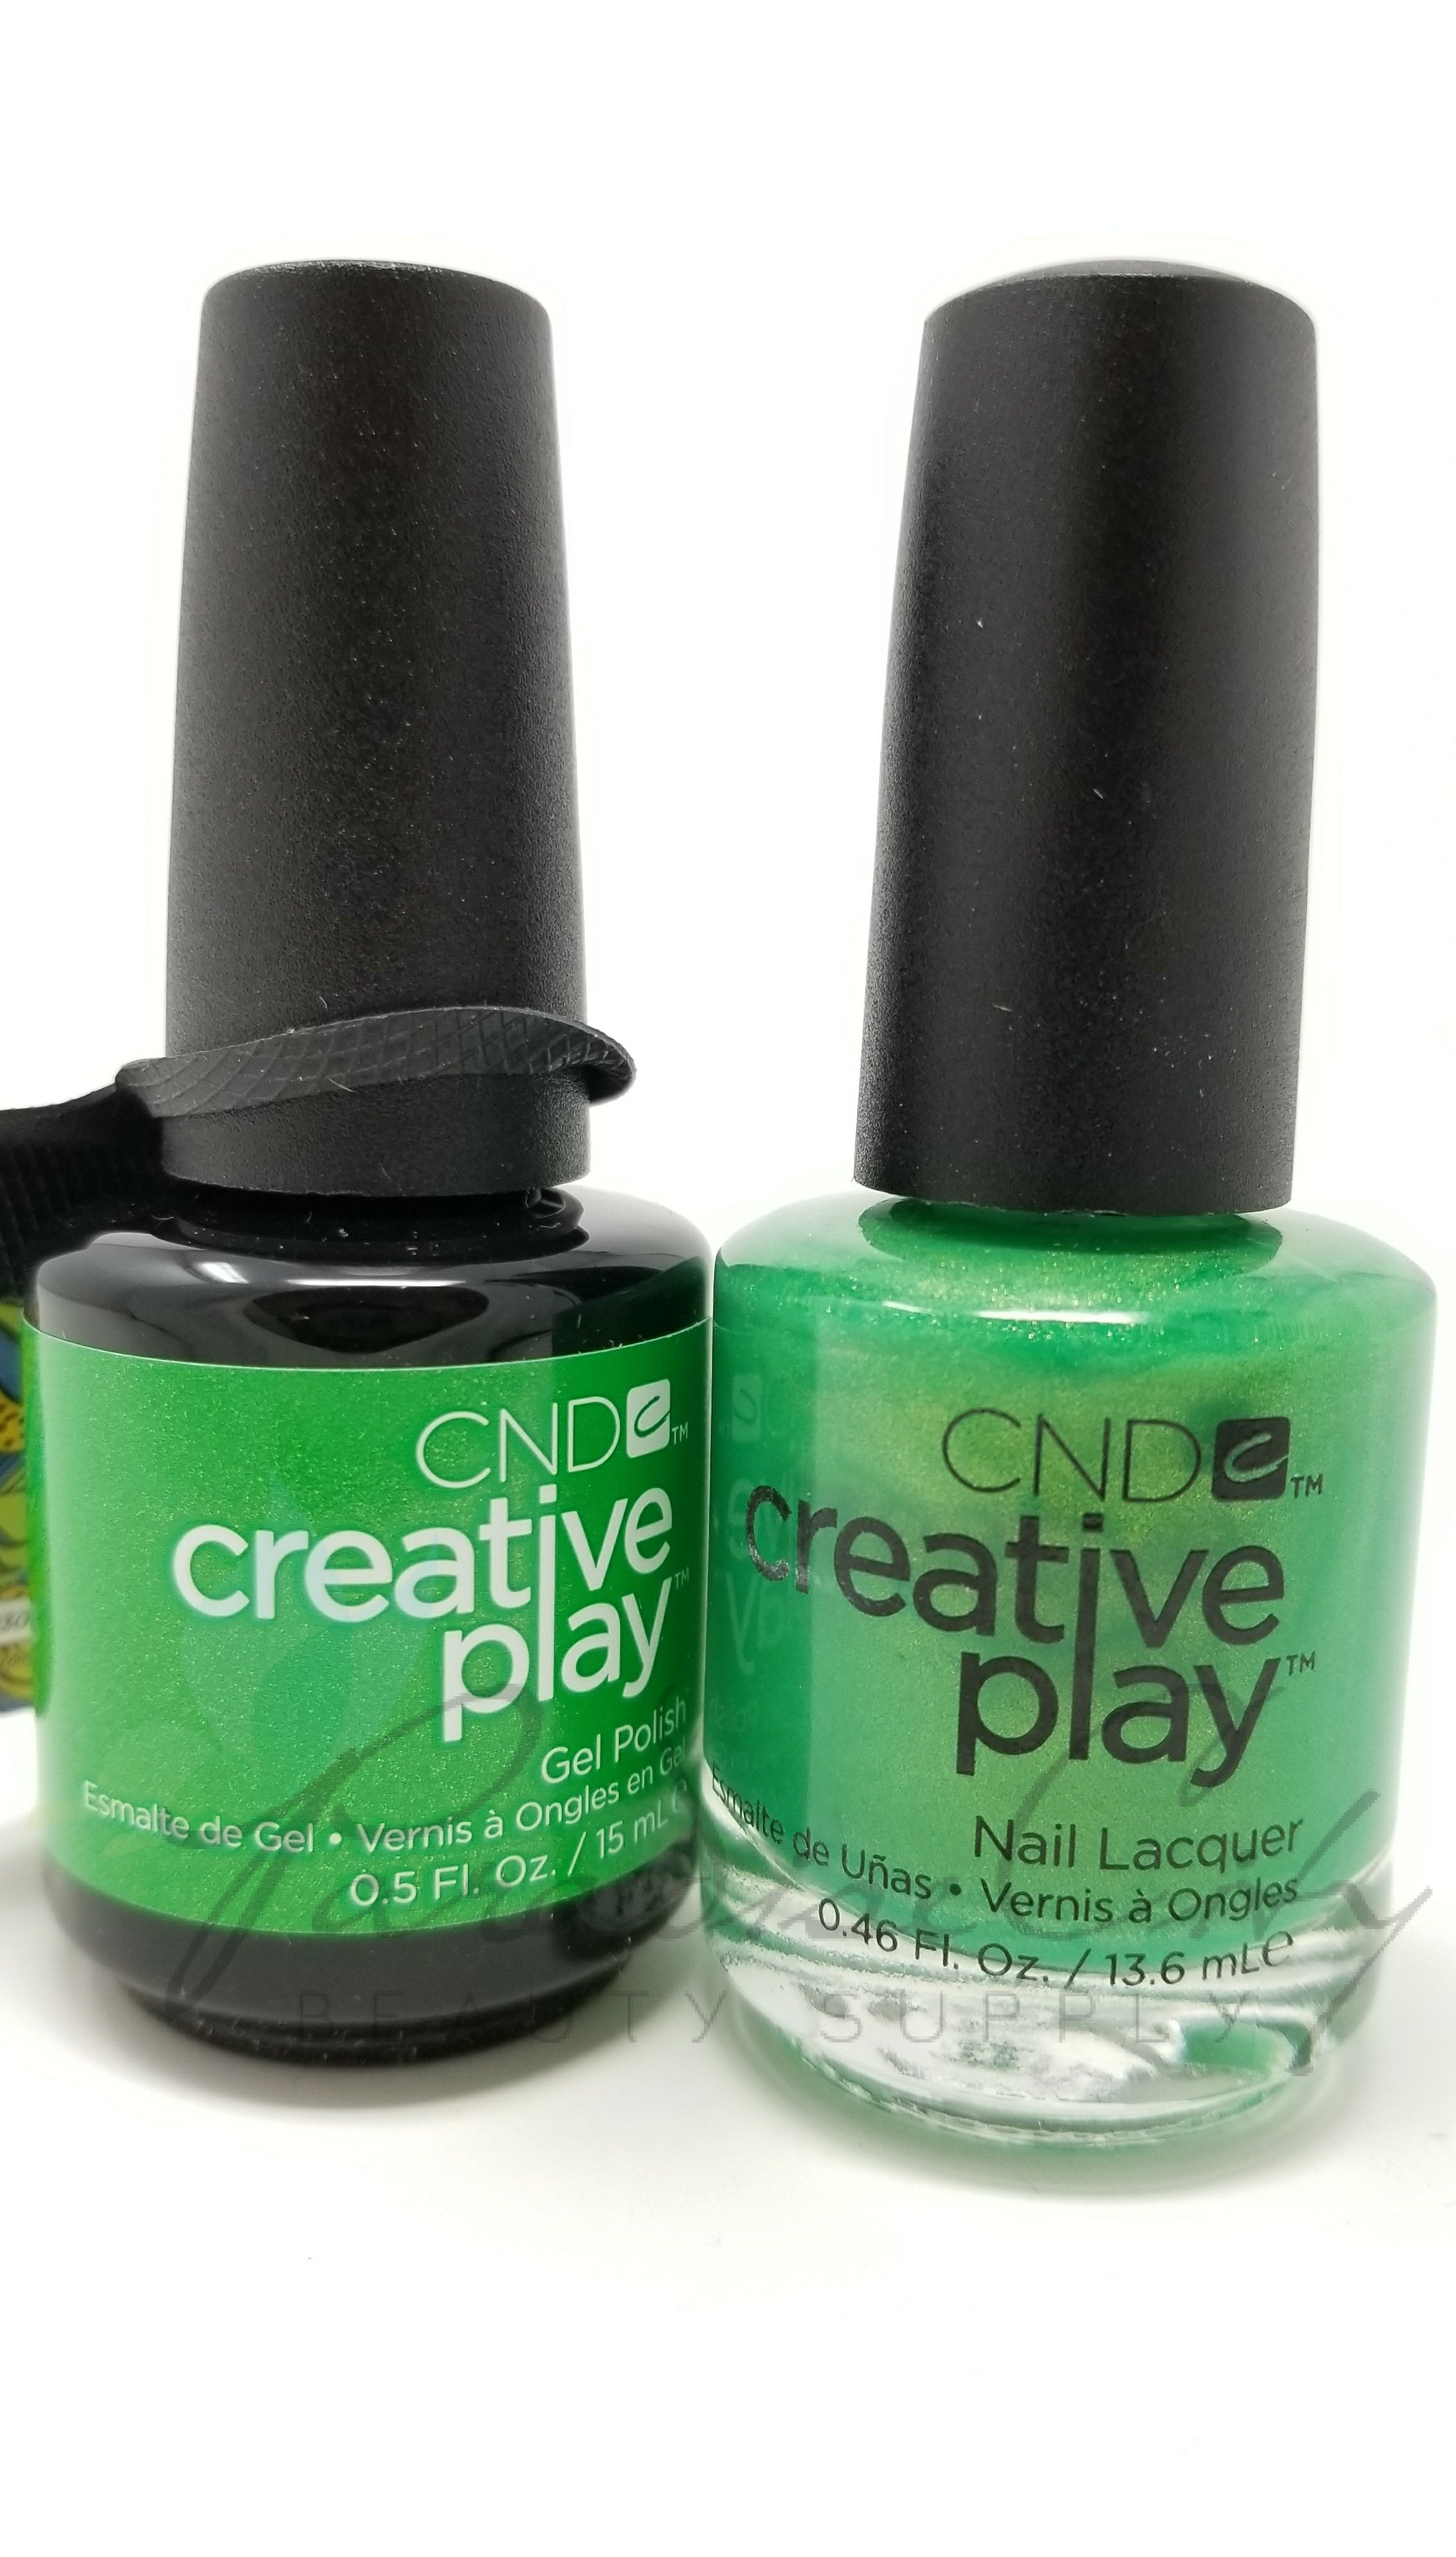 CND Creative Play Matching Gel Polish & Nail Lacquer - #430 Love It ...